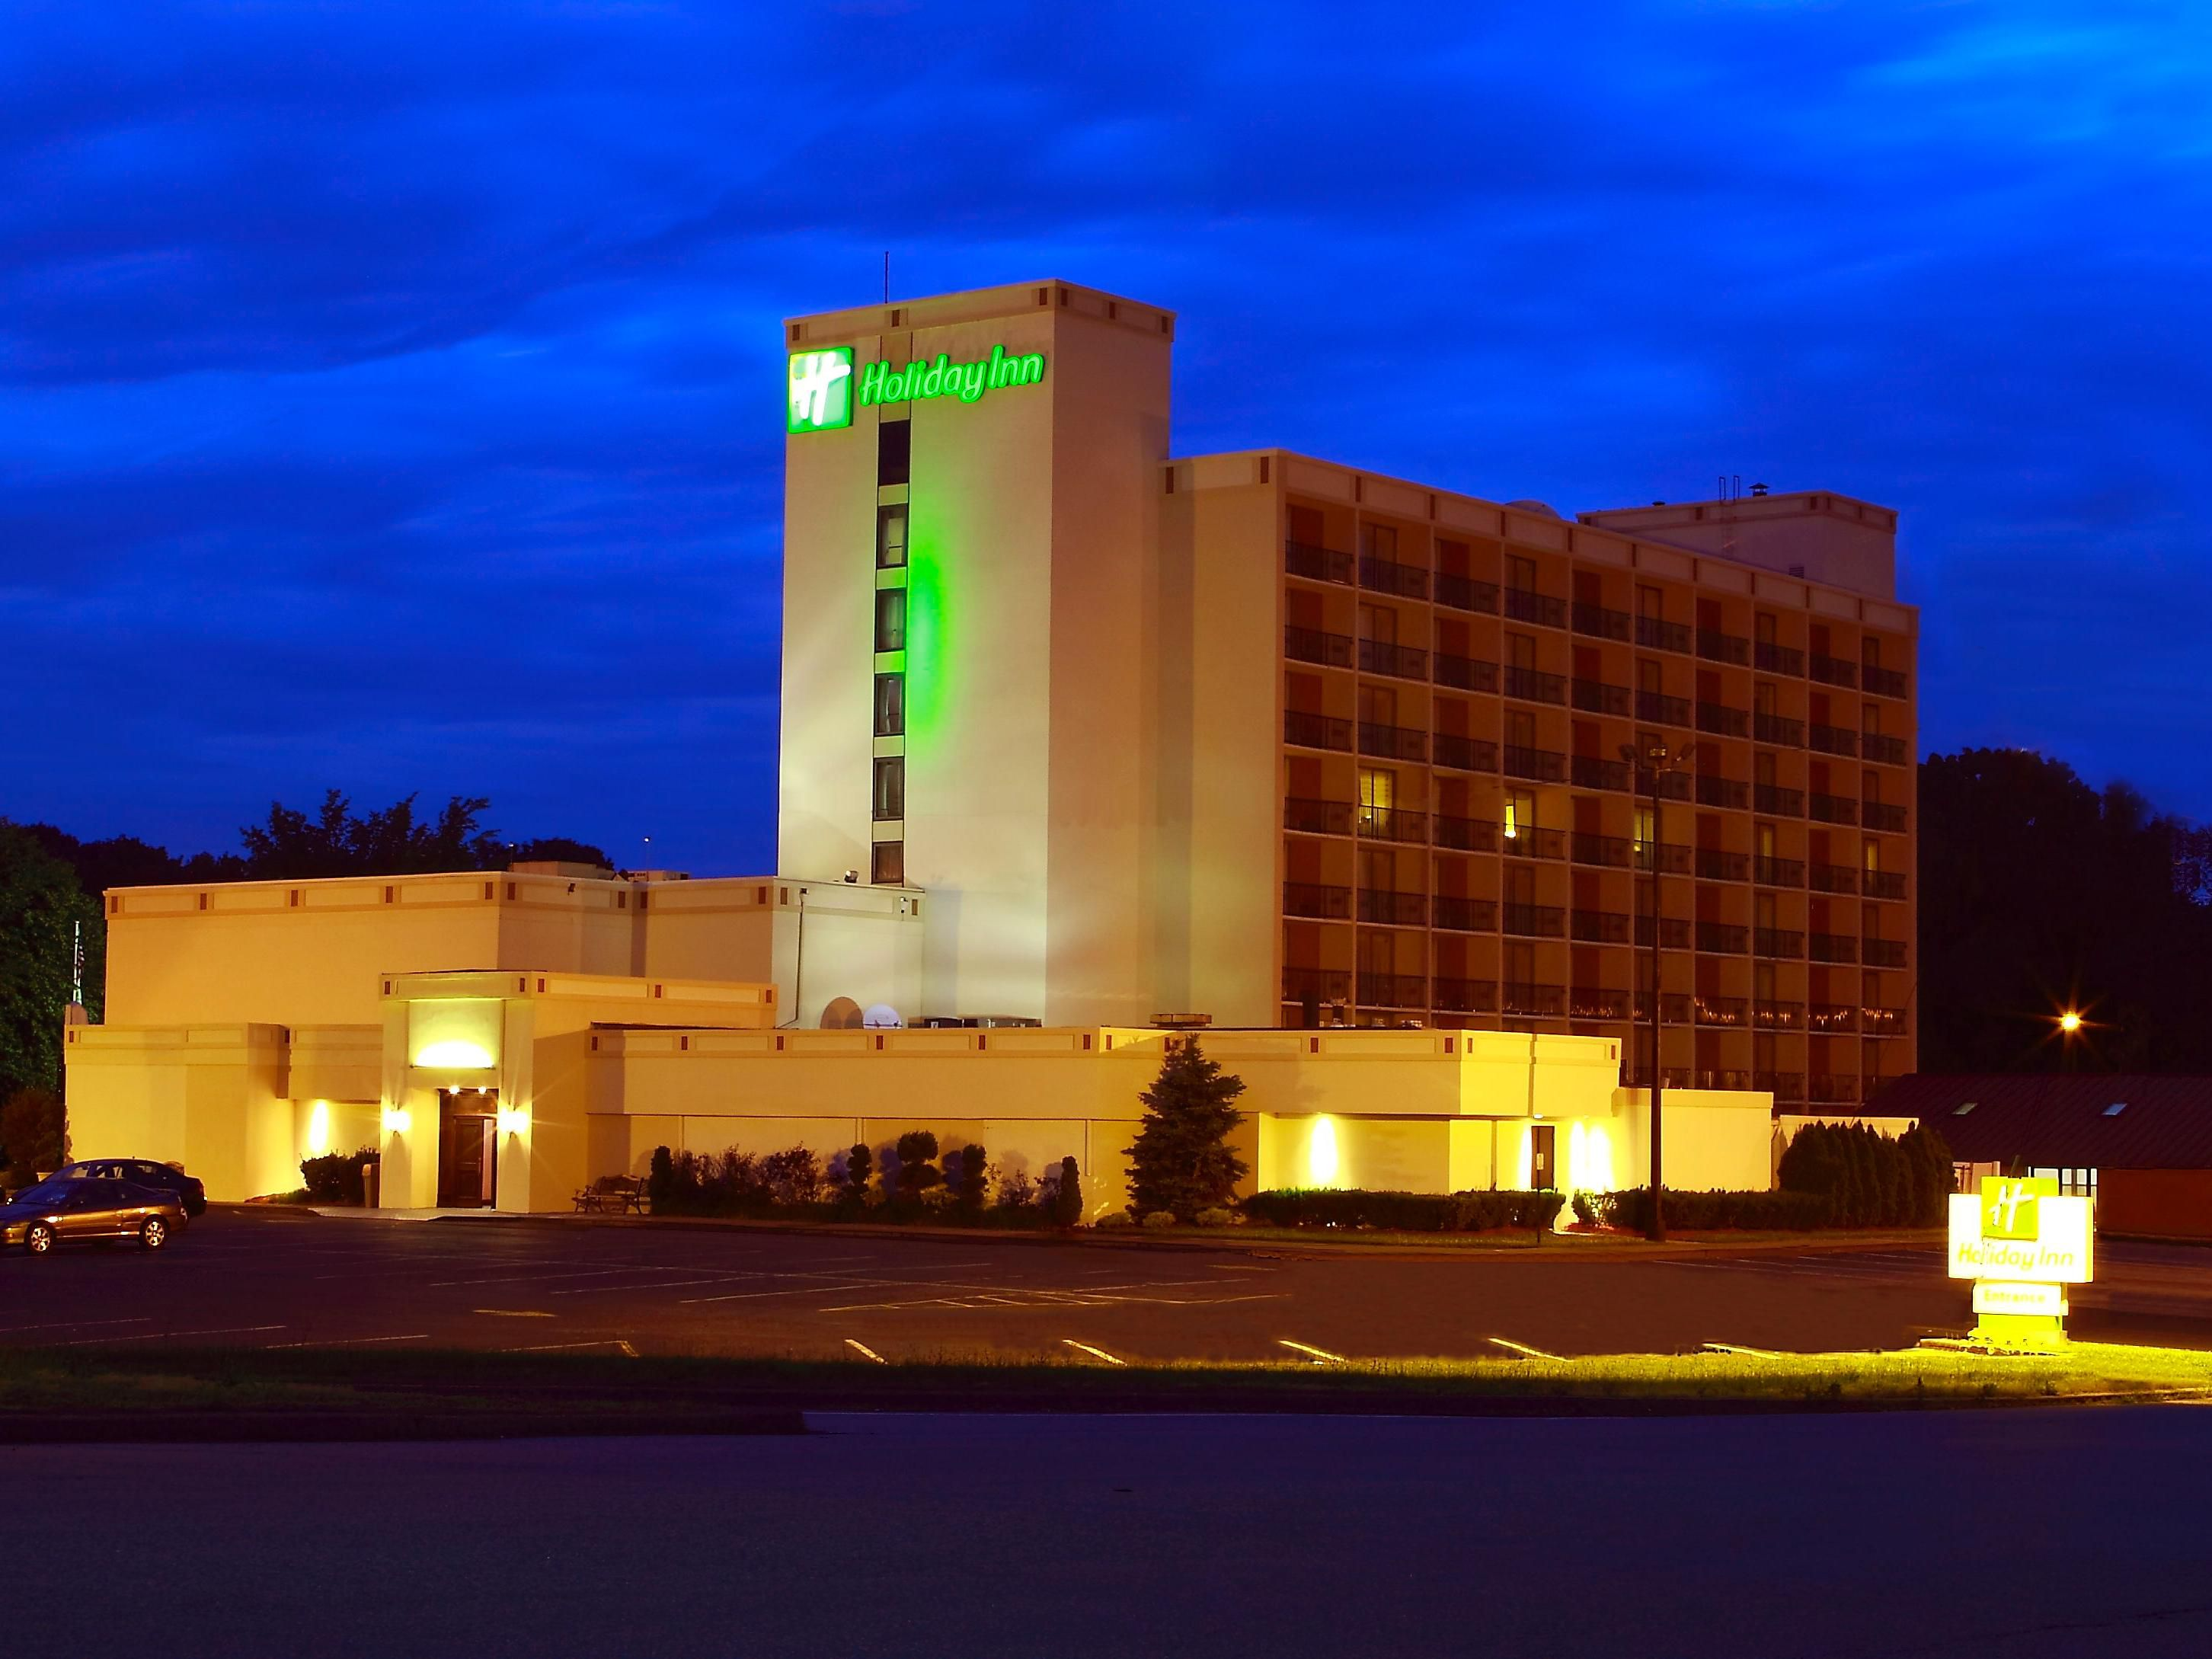 Welcome to Holiday Inn Saddle Brook, NJ